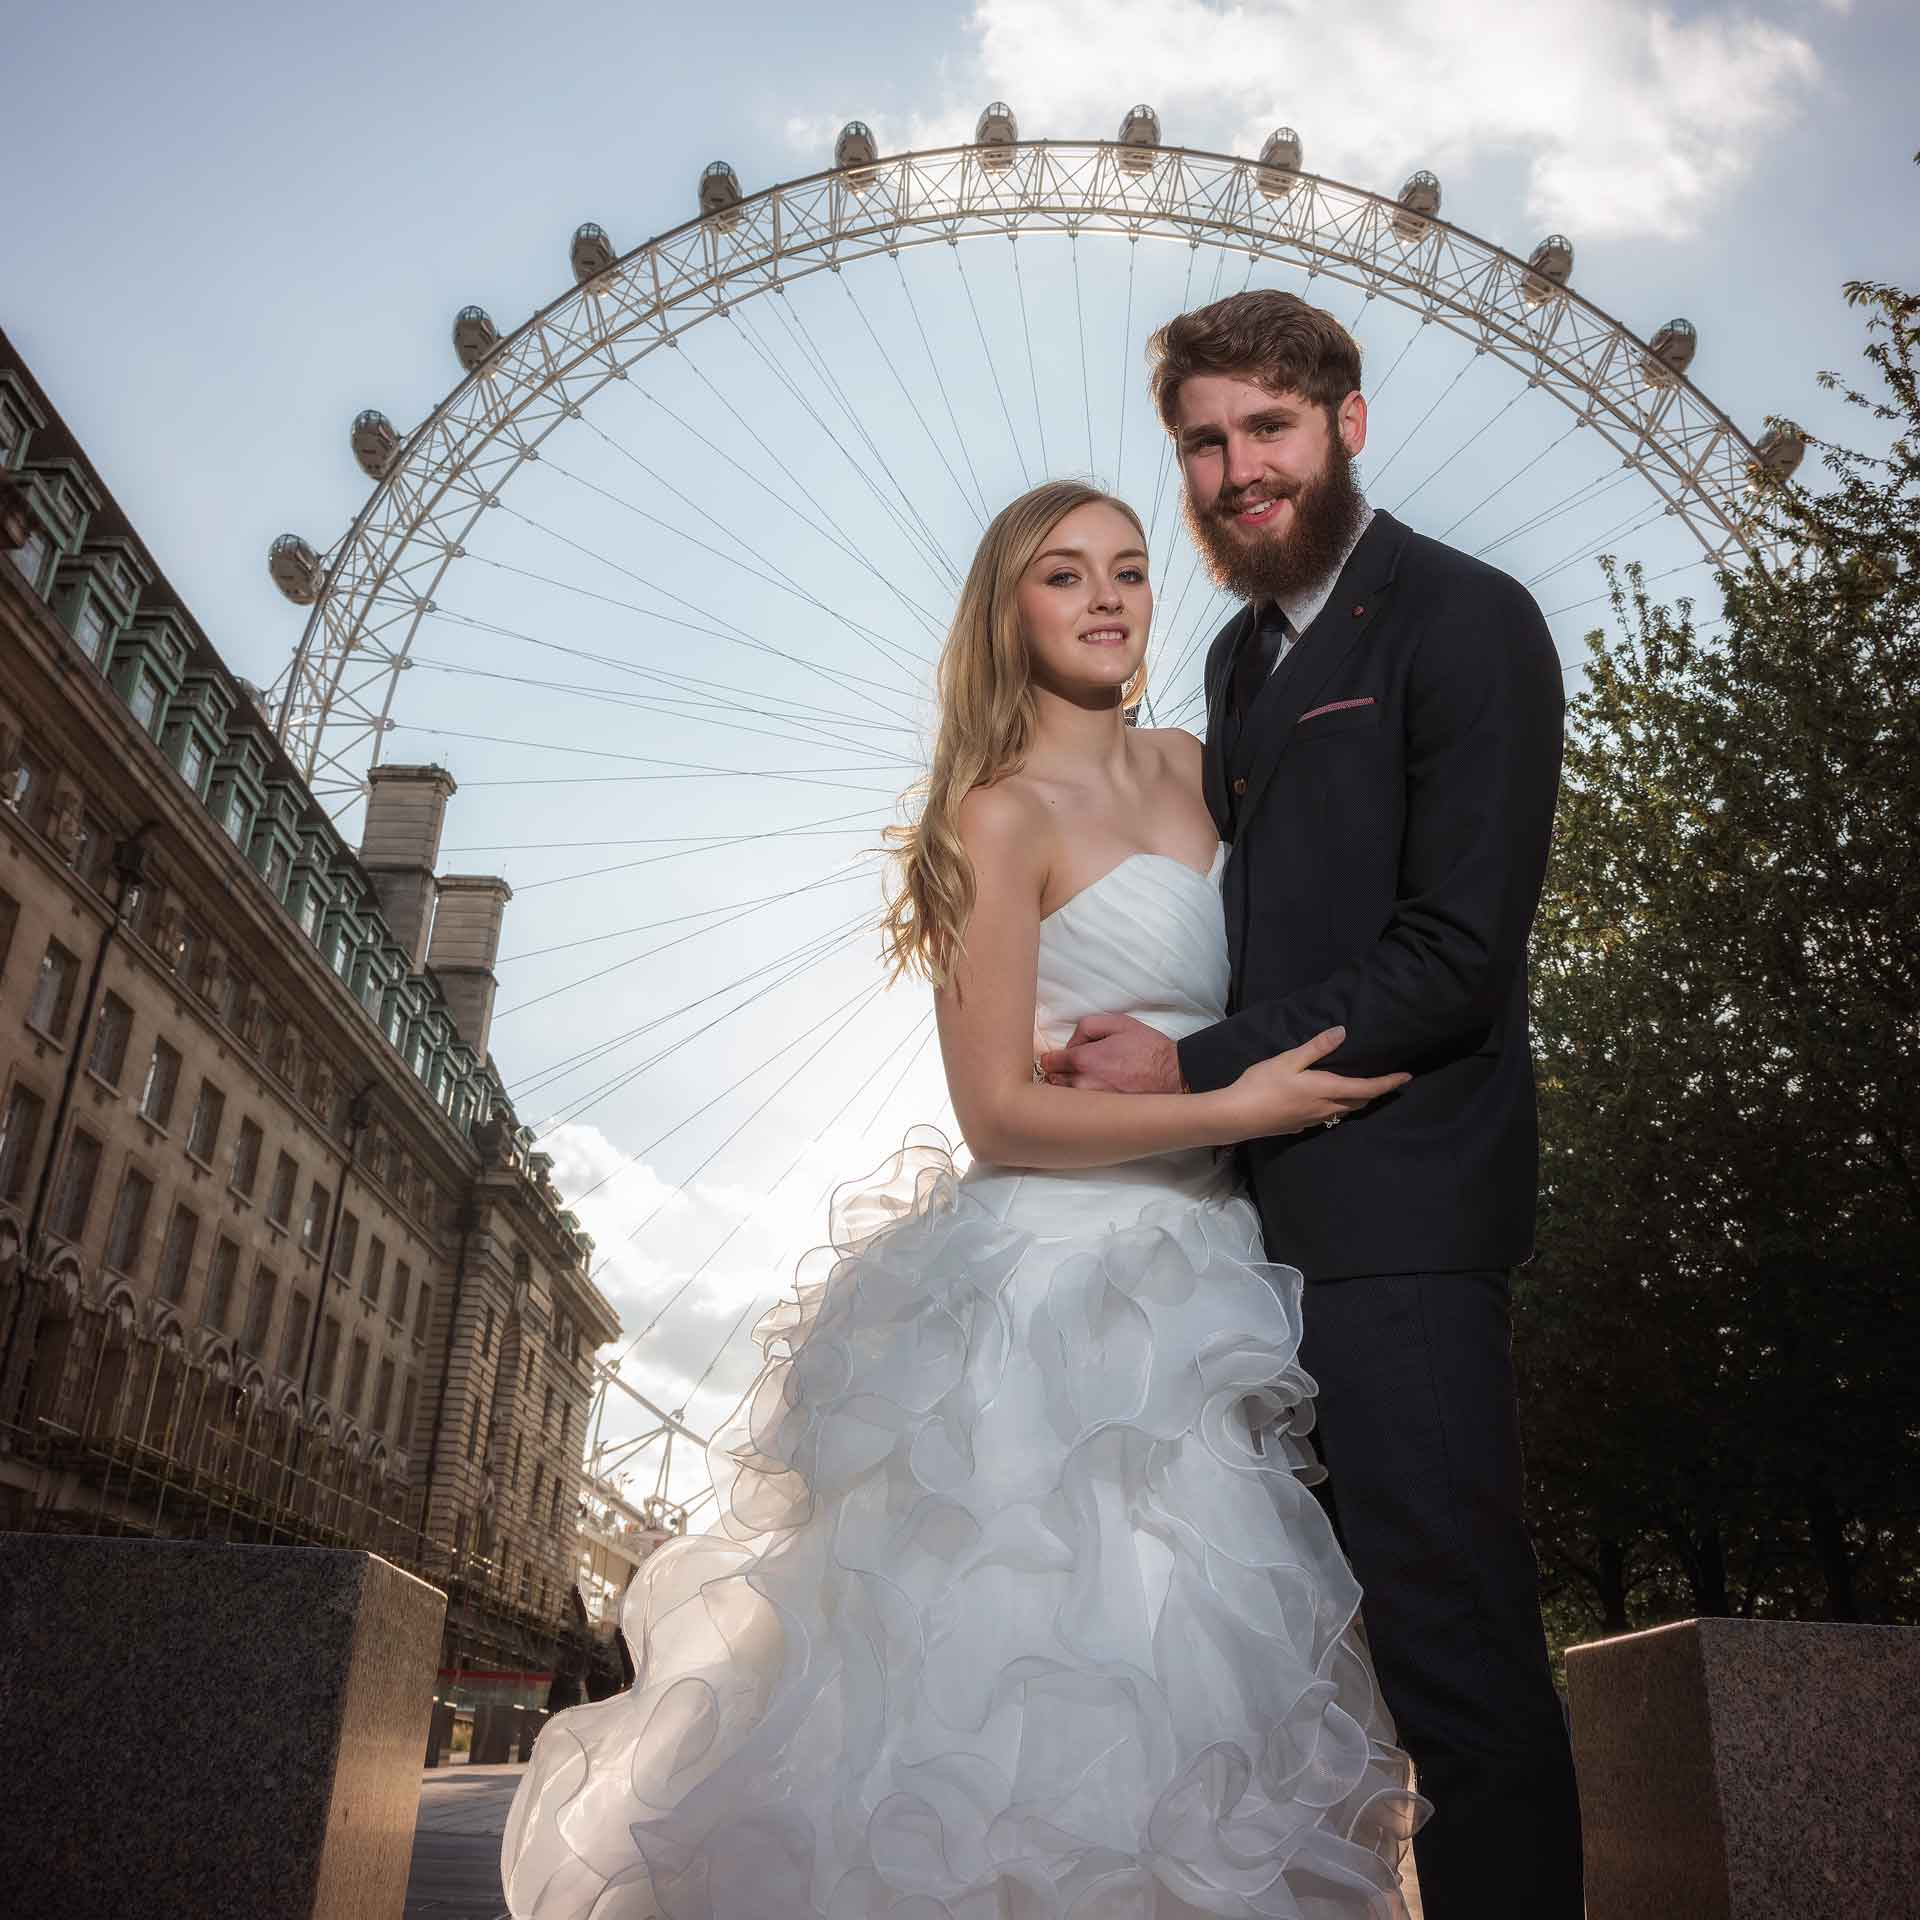 After the wedding photo shoot in London